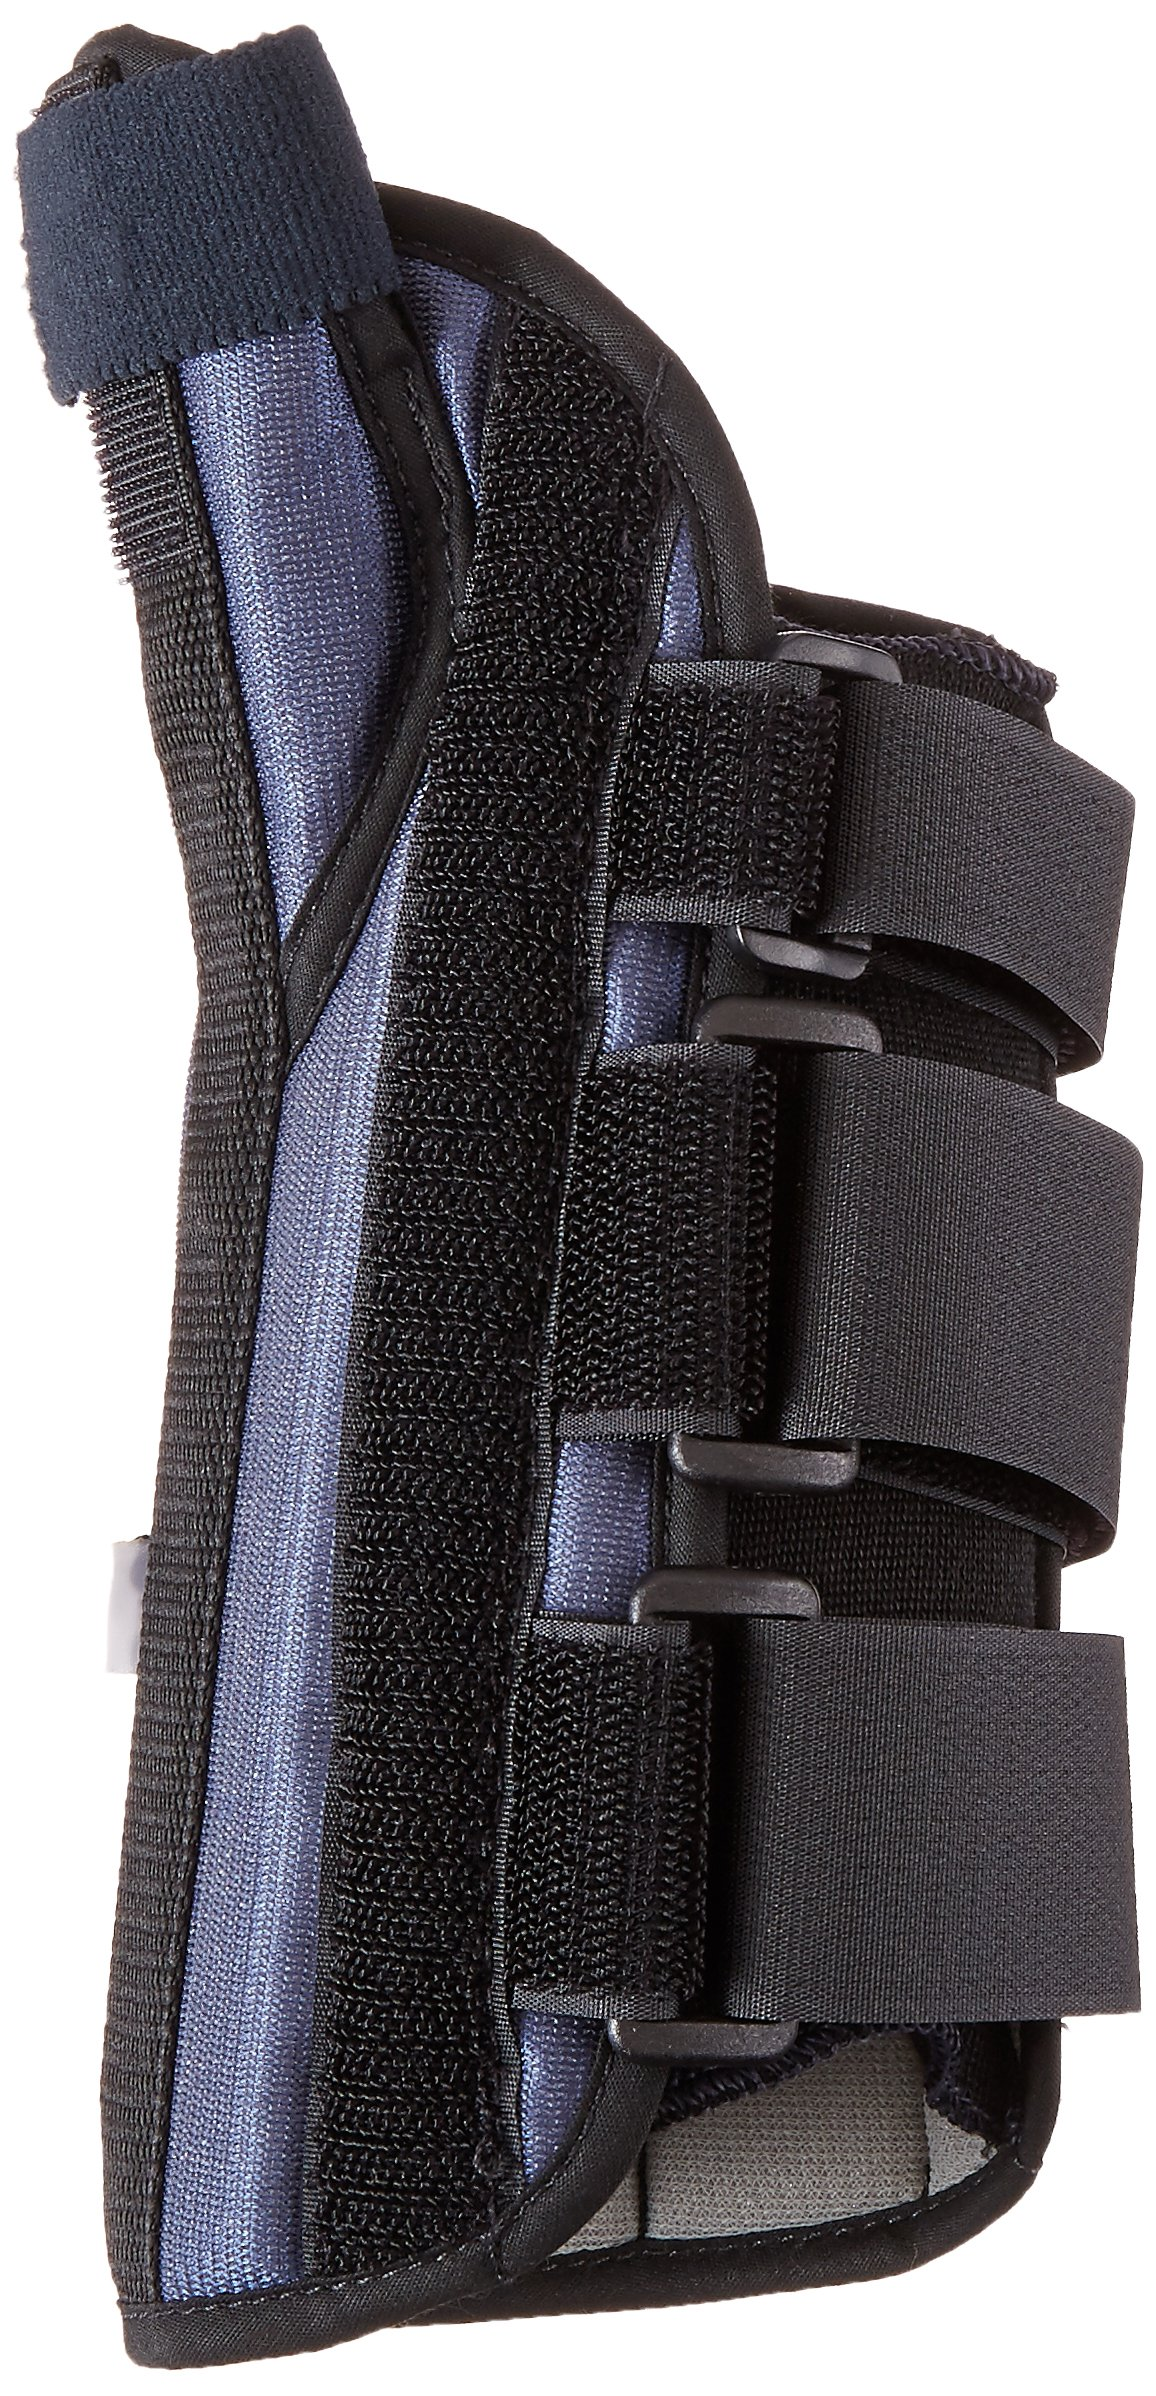 Sammons Preston Thumb Spica Wrist Brace, MC and CMC Joint Support and Stabilizer, Secure Brace and Splint for Thumb with Open Finger, Splint for Recovery, Therapy, Rehabilitation, Right, Medium by Sammons Preston (Image #2)